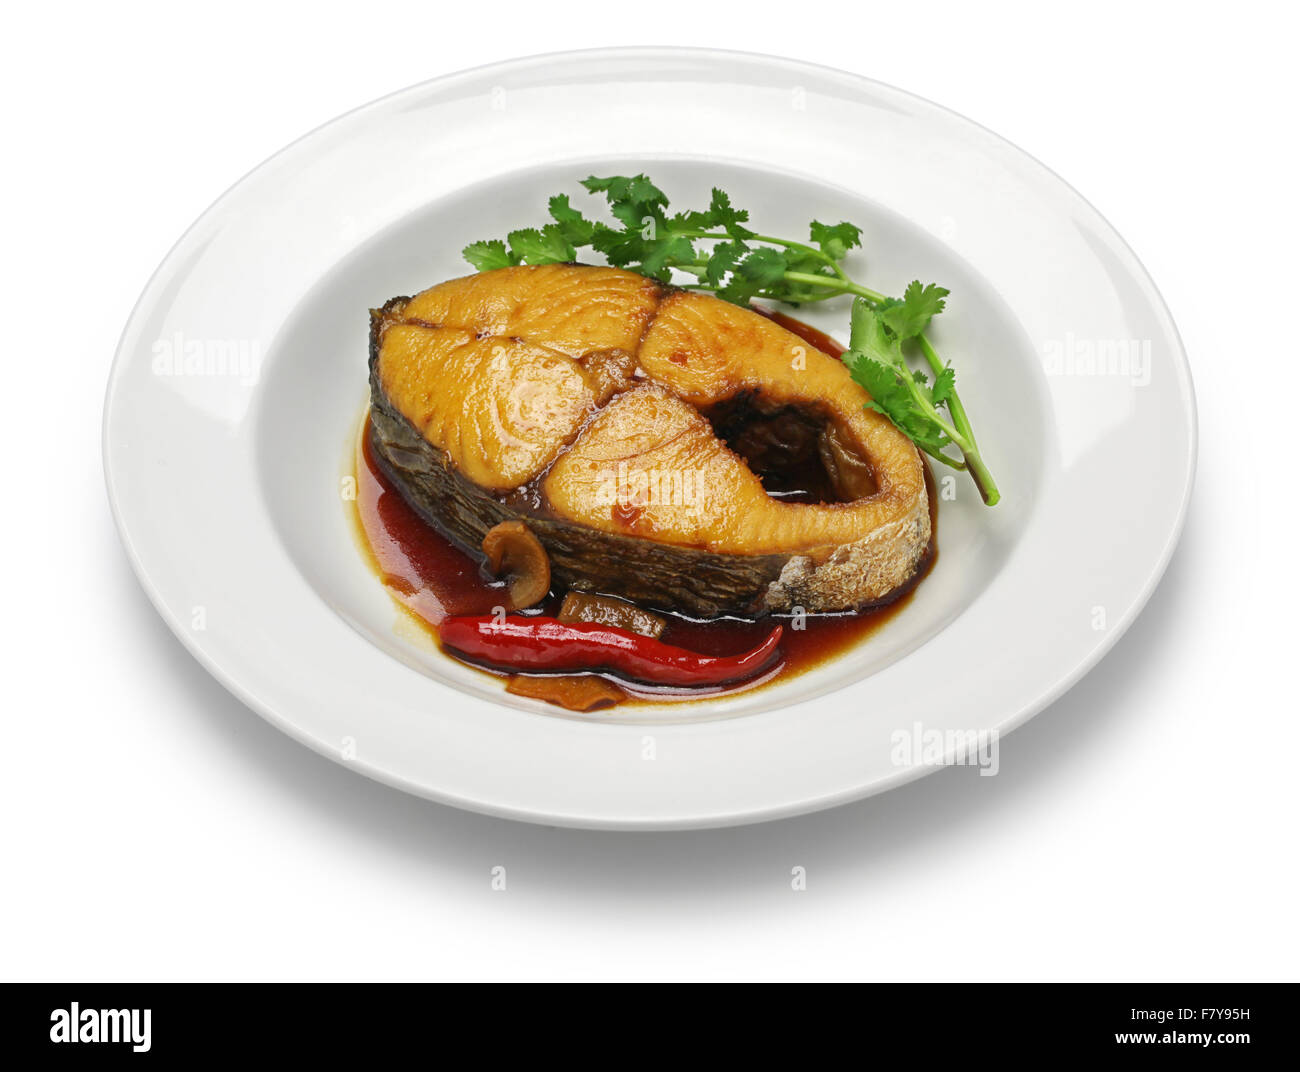 ca thu kho, king mackerel simmered in caramelized sauce, vietnamese cuisine - Stock Image